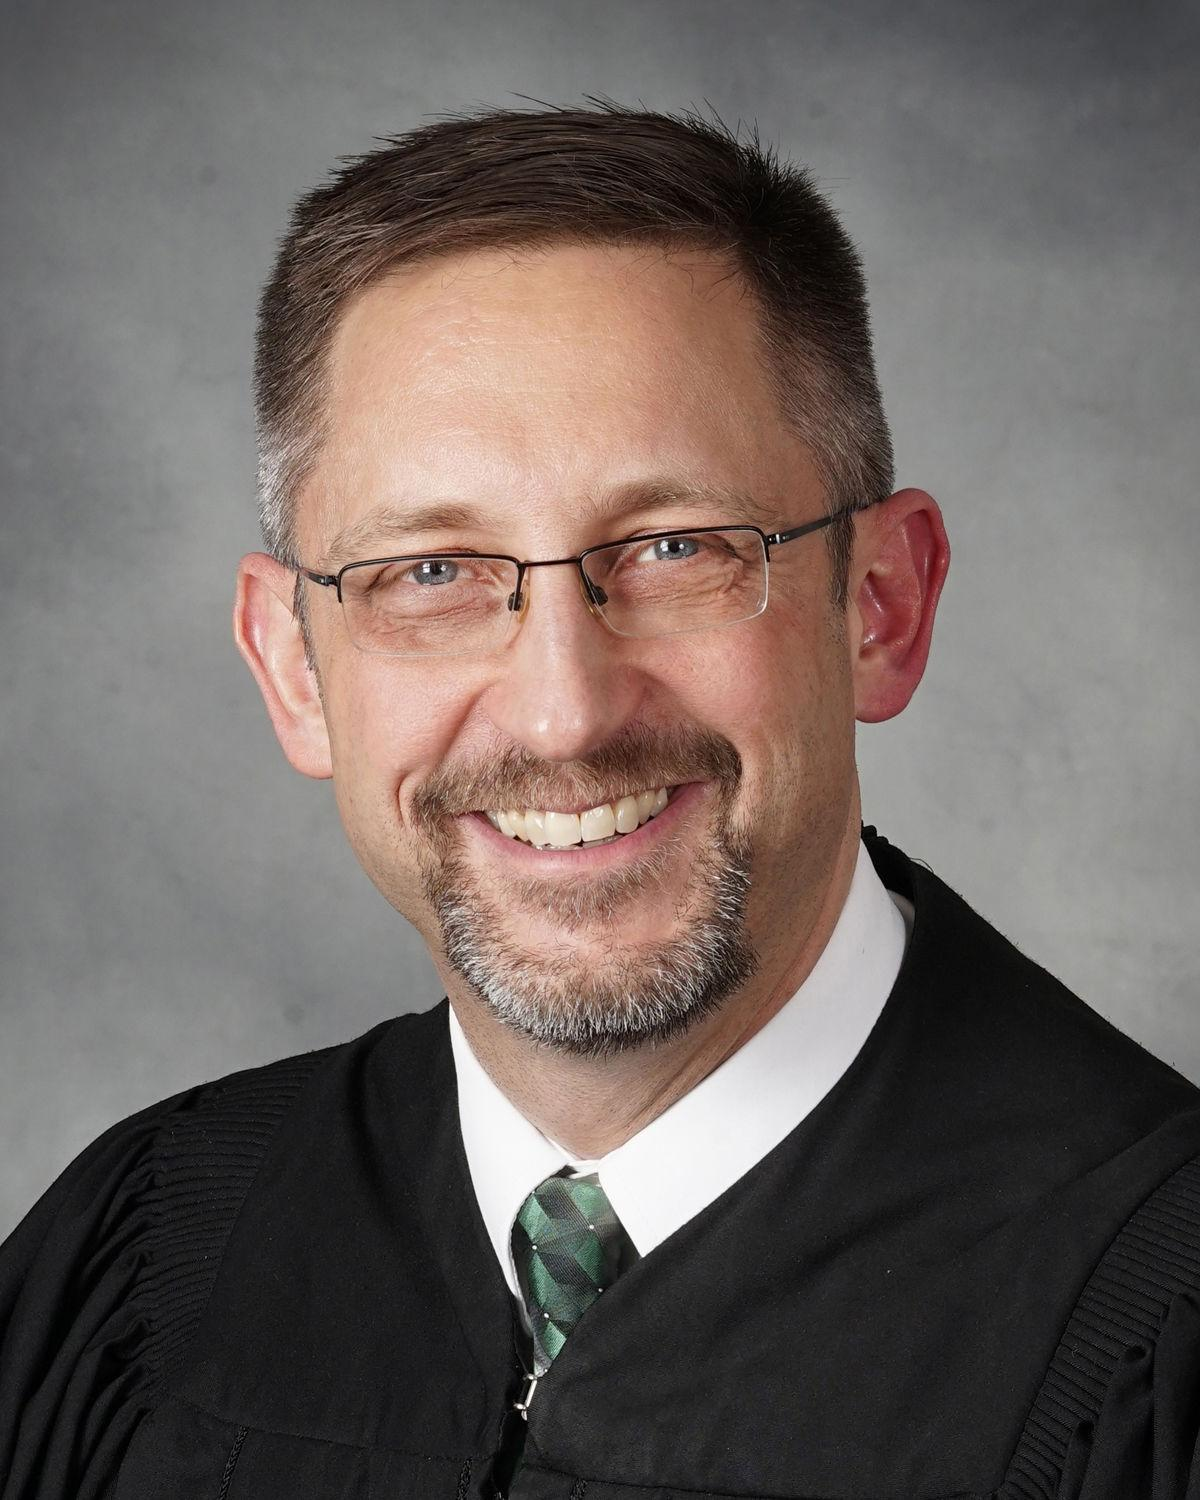 Justice Christopher Goff